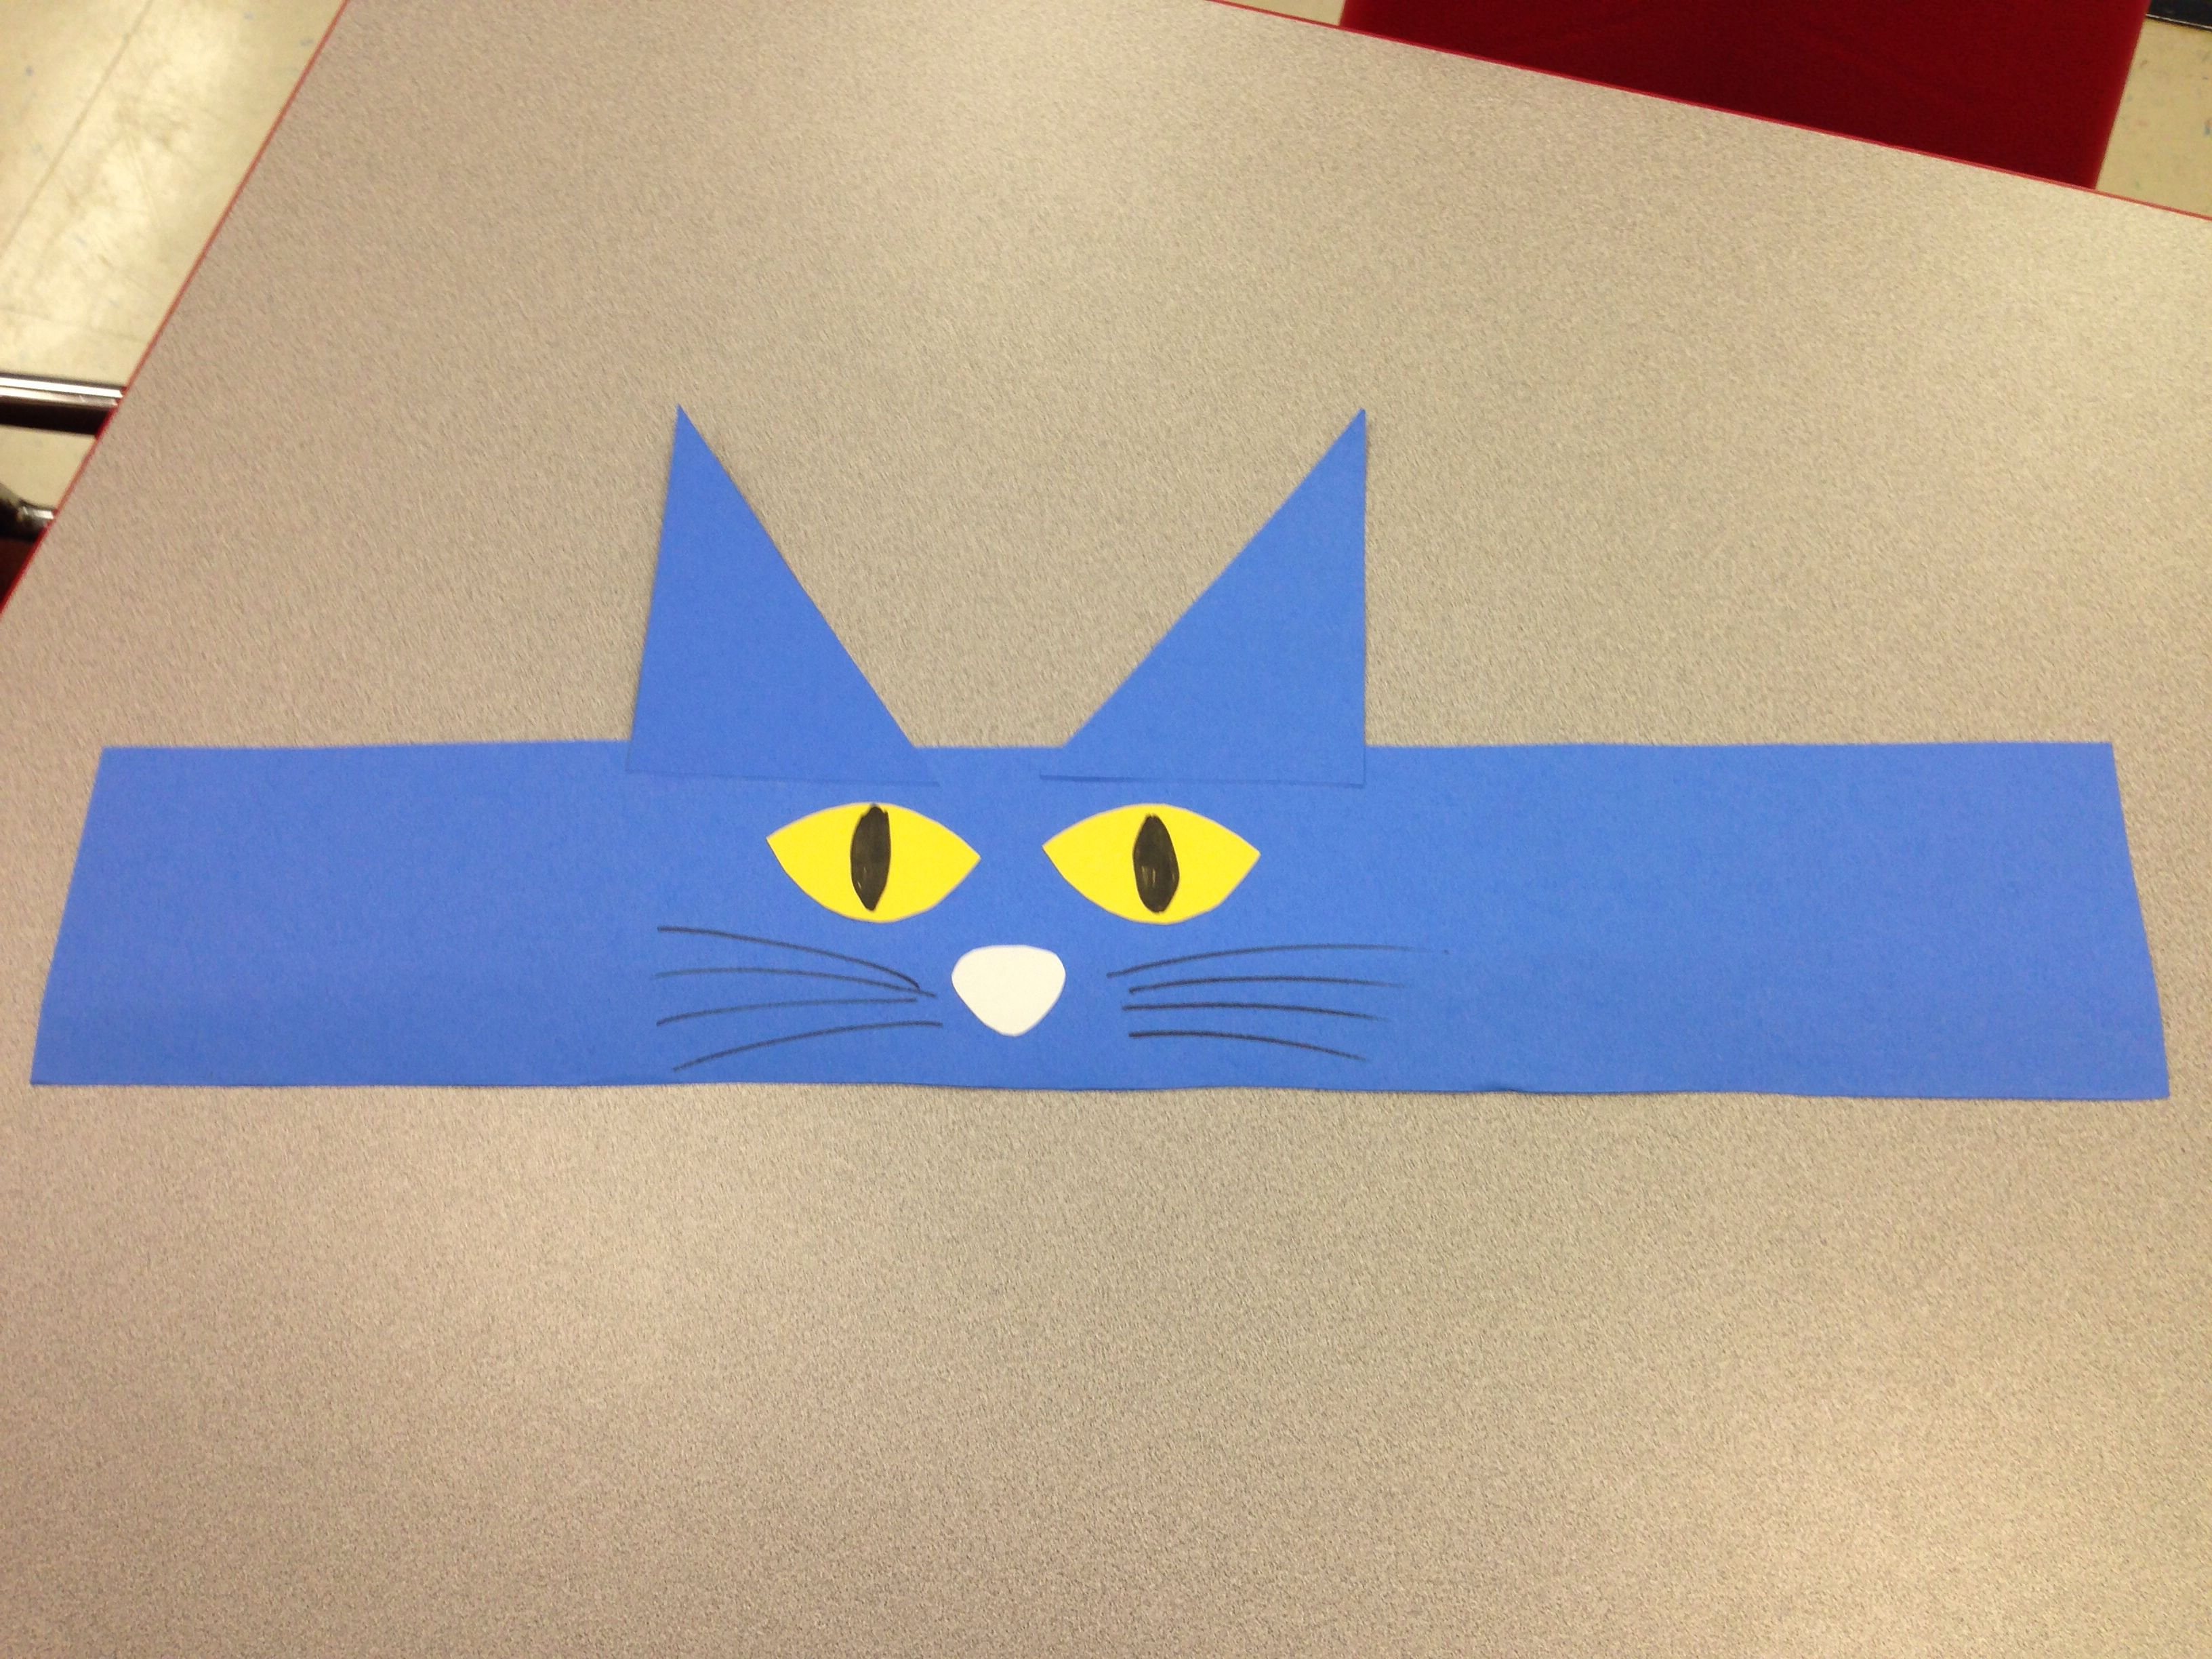 Pete The Cat Hat Uld Use For Rocking In My School Shoes